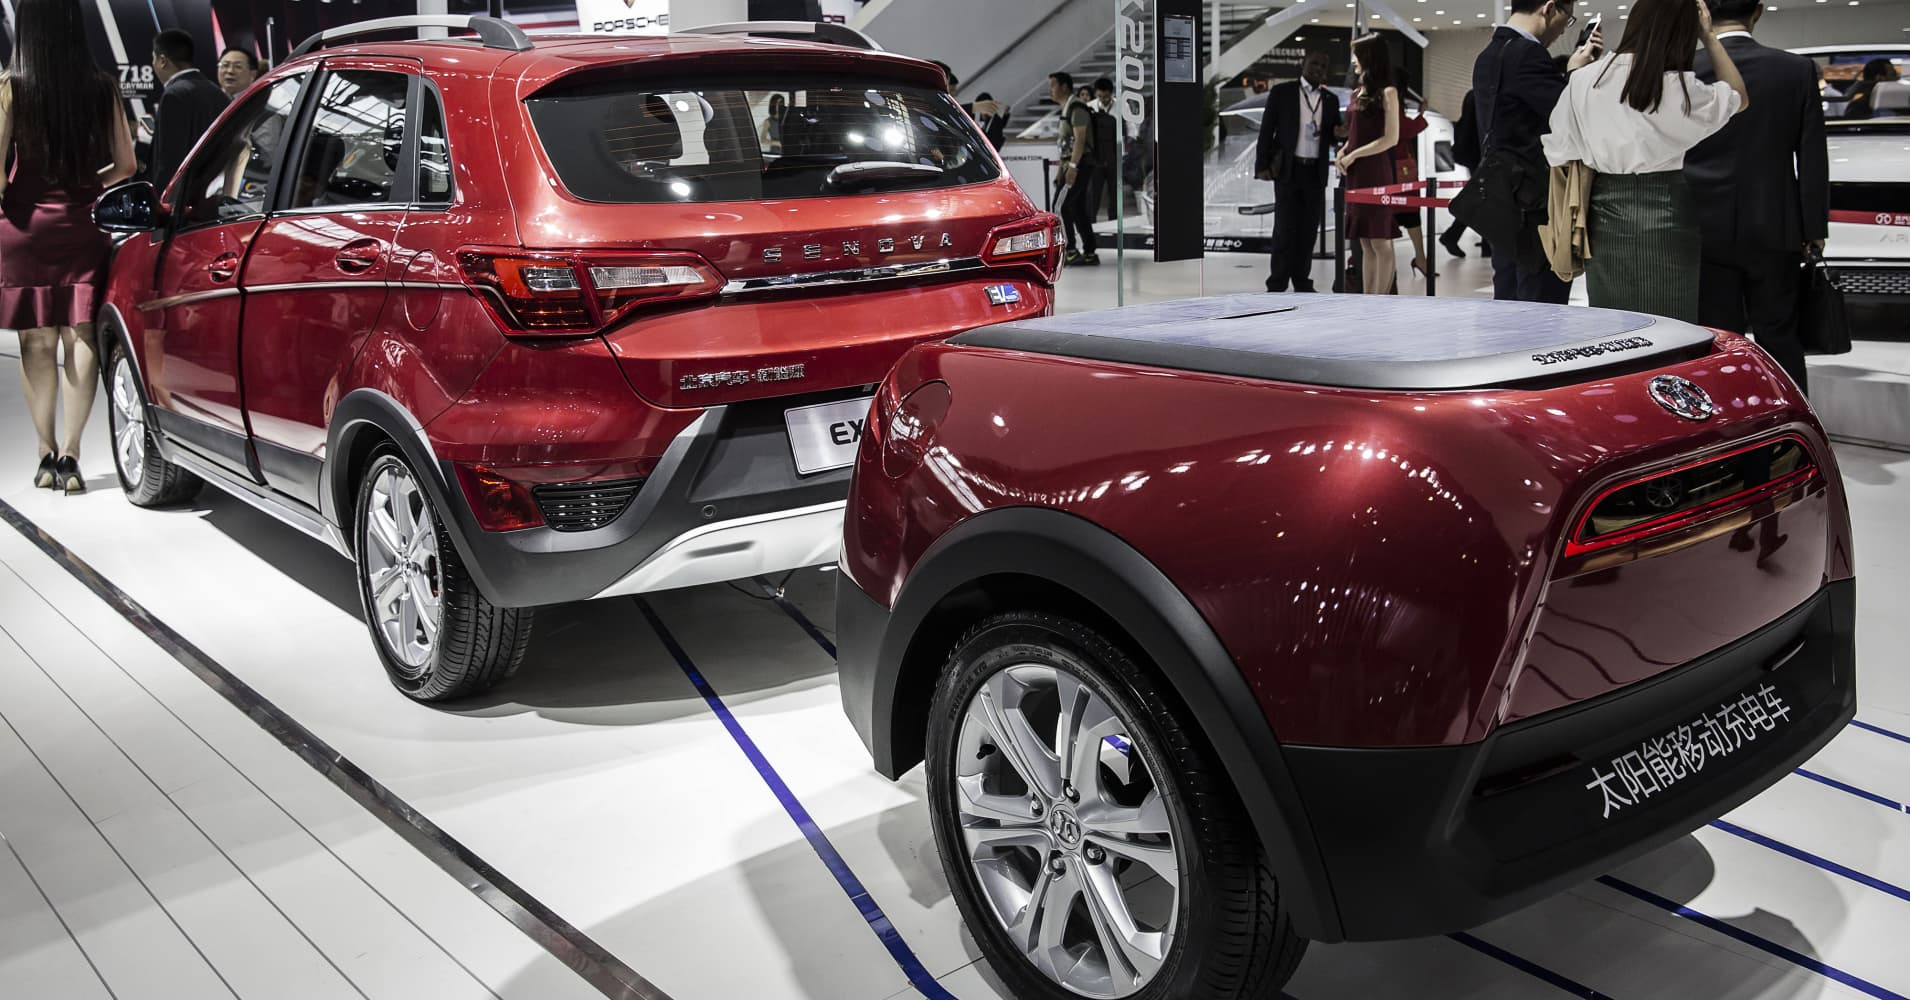 Suvs Dominate The Beijing Auto Show